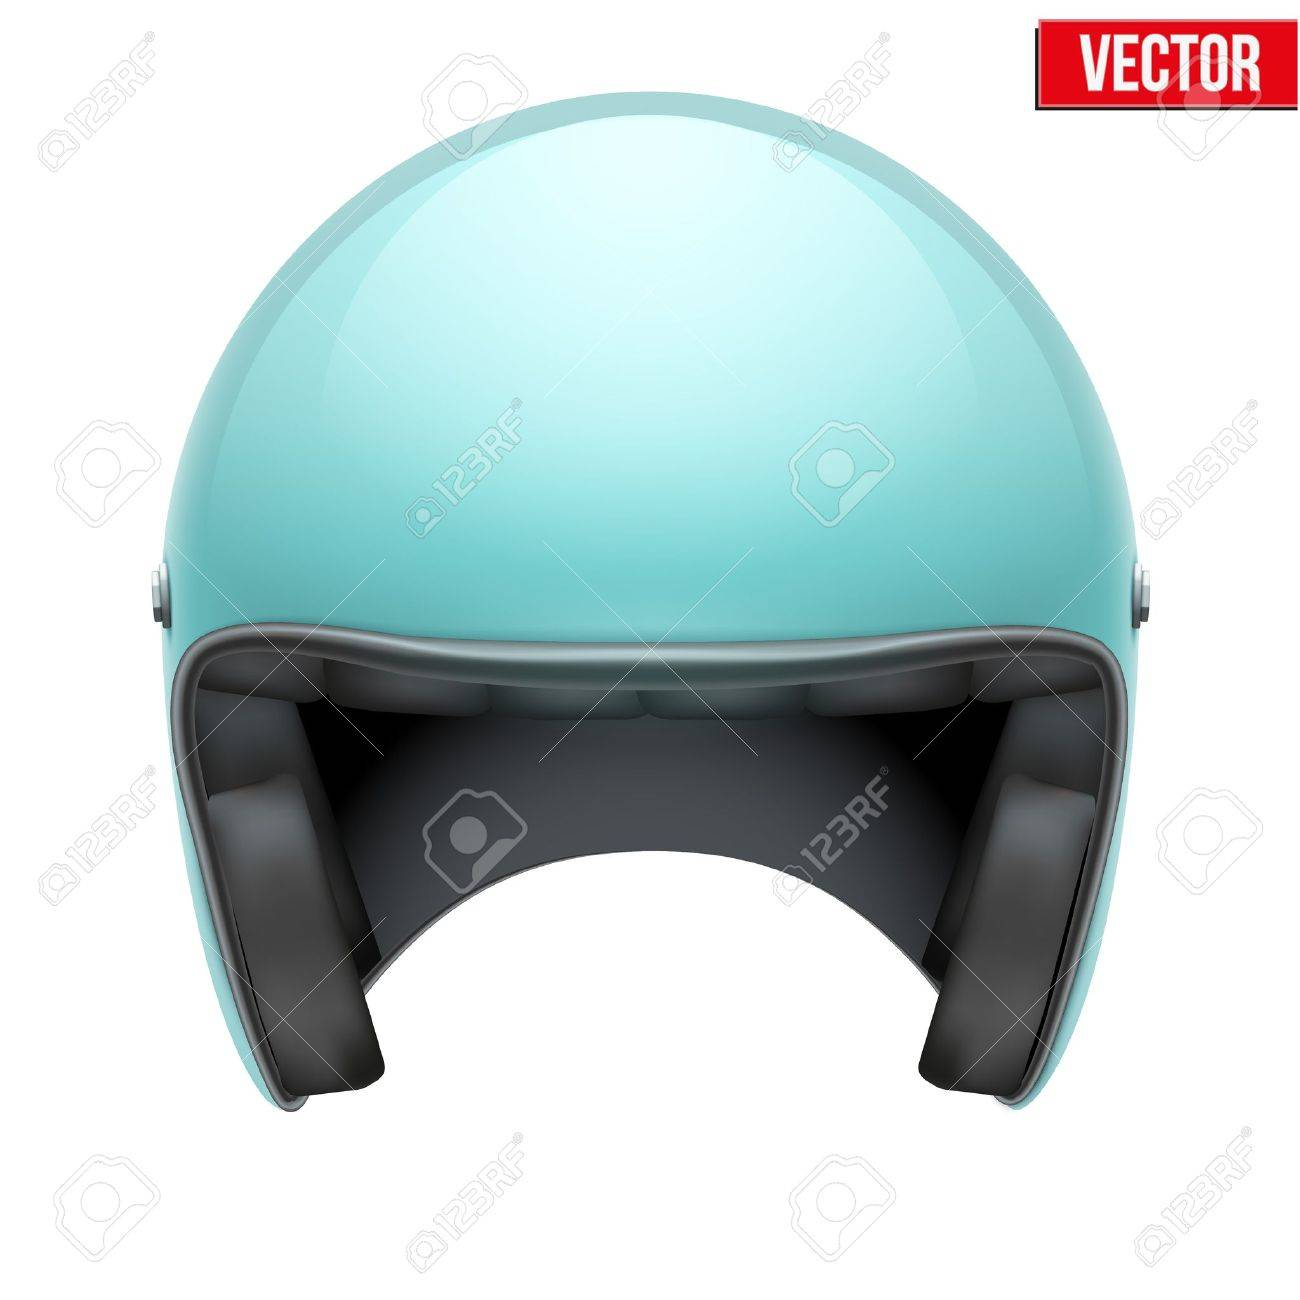 dad03c33d2 Vintage motorcycle scooter blue helmet Vector Illustration isolated on  white background Stock Vector - 30821959